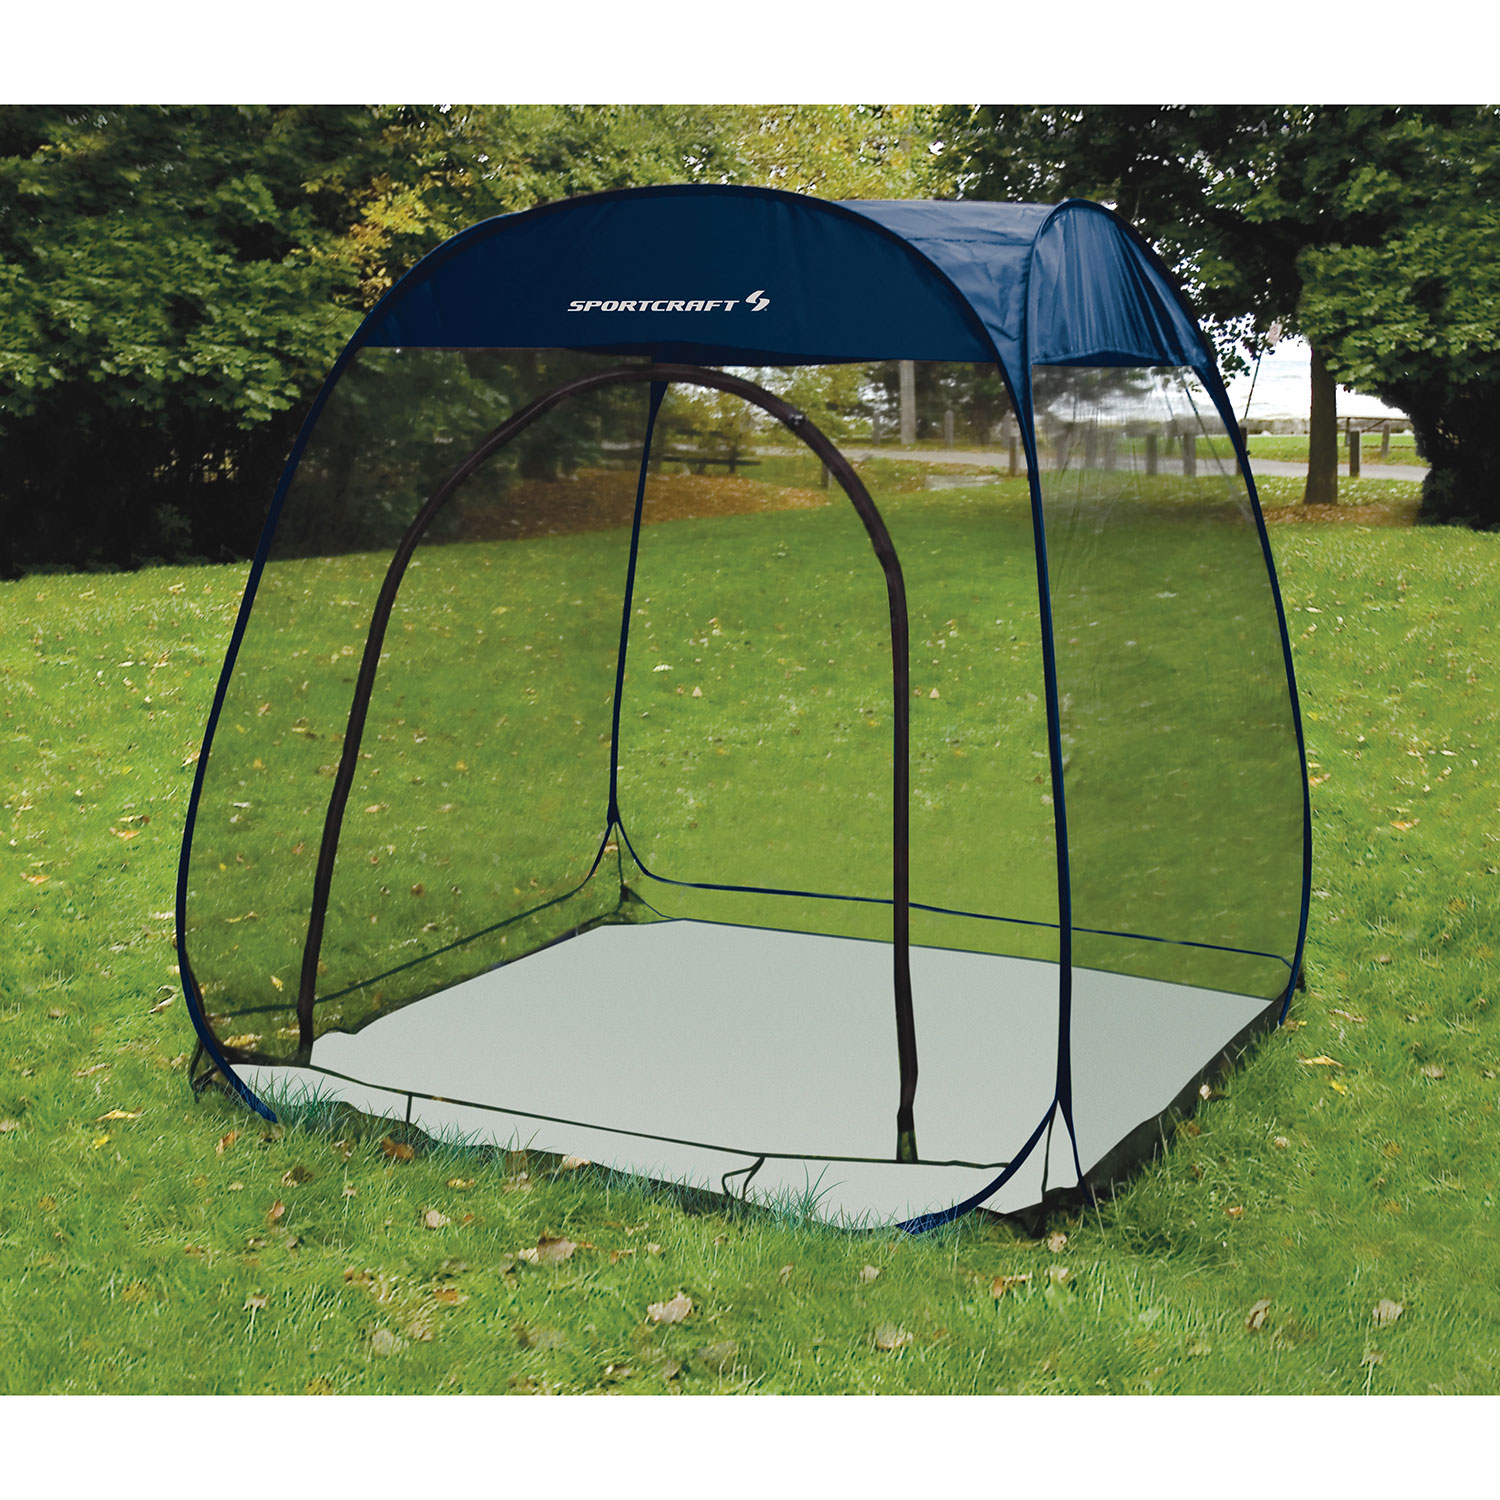 Sportcraft Popup Screen Room   6 X 6 X 6 Ft. : Shelters U0026 Screen Tents    Best Buy Canada